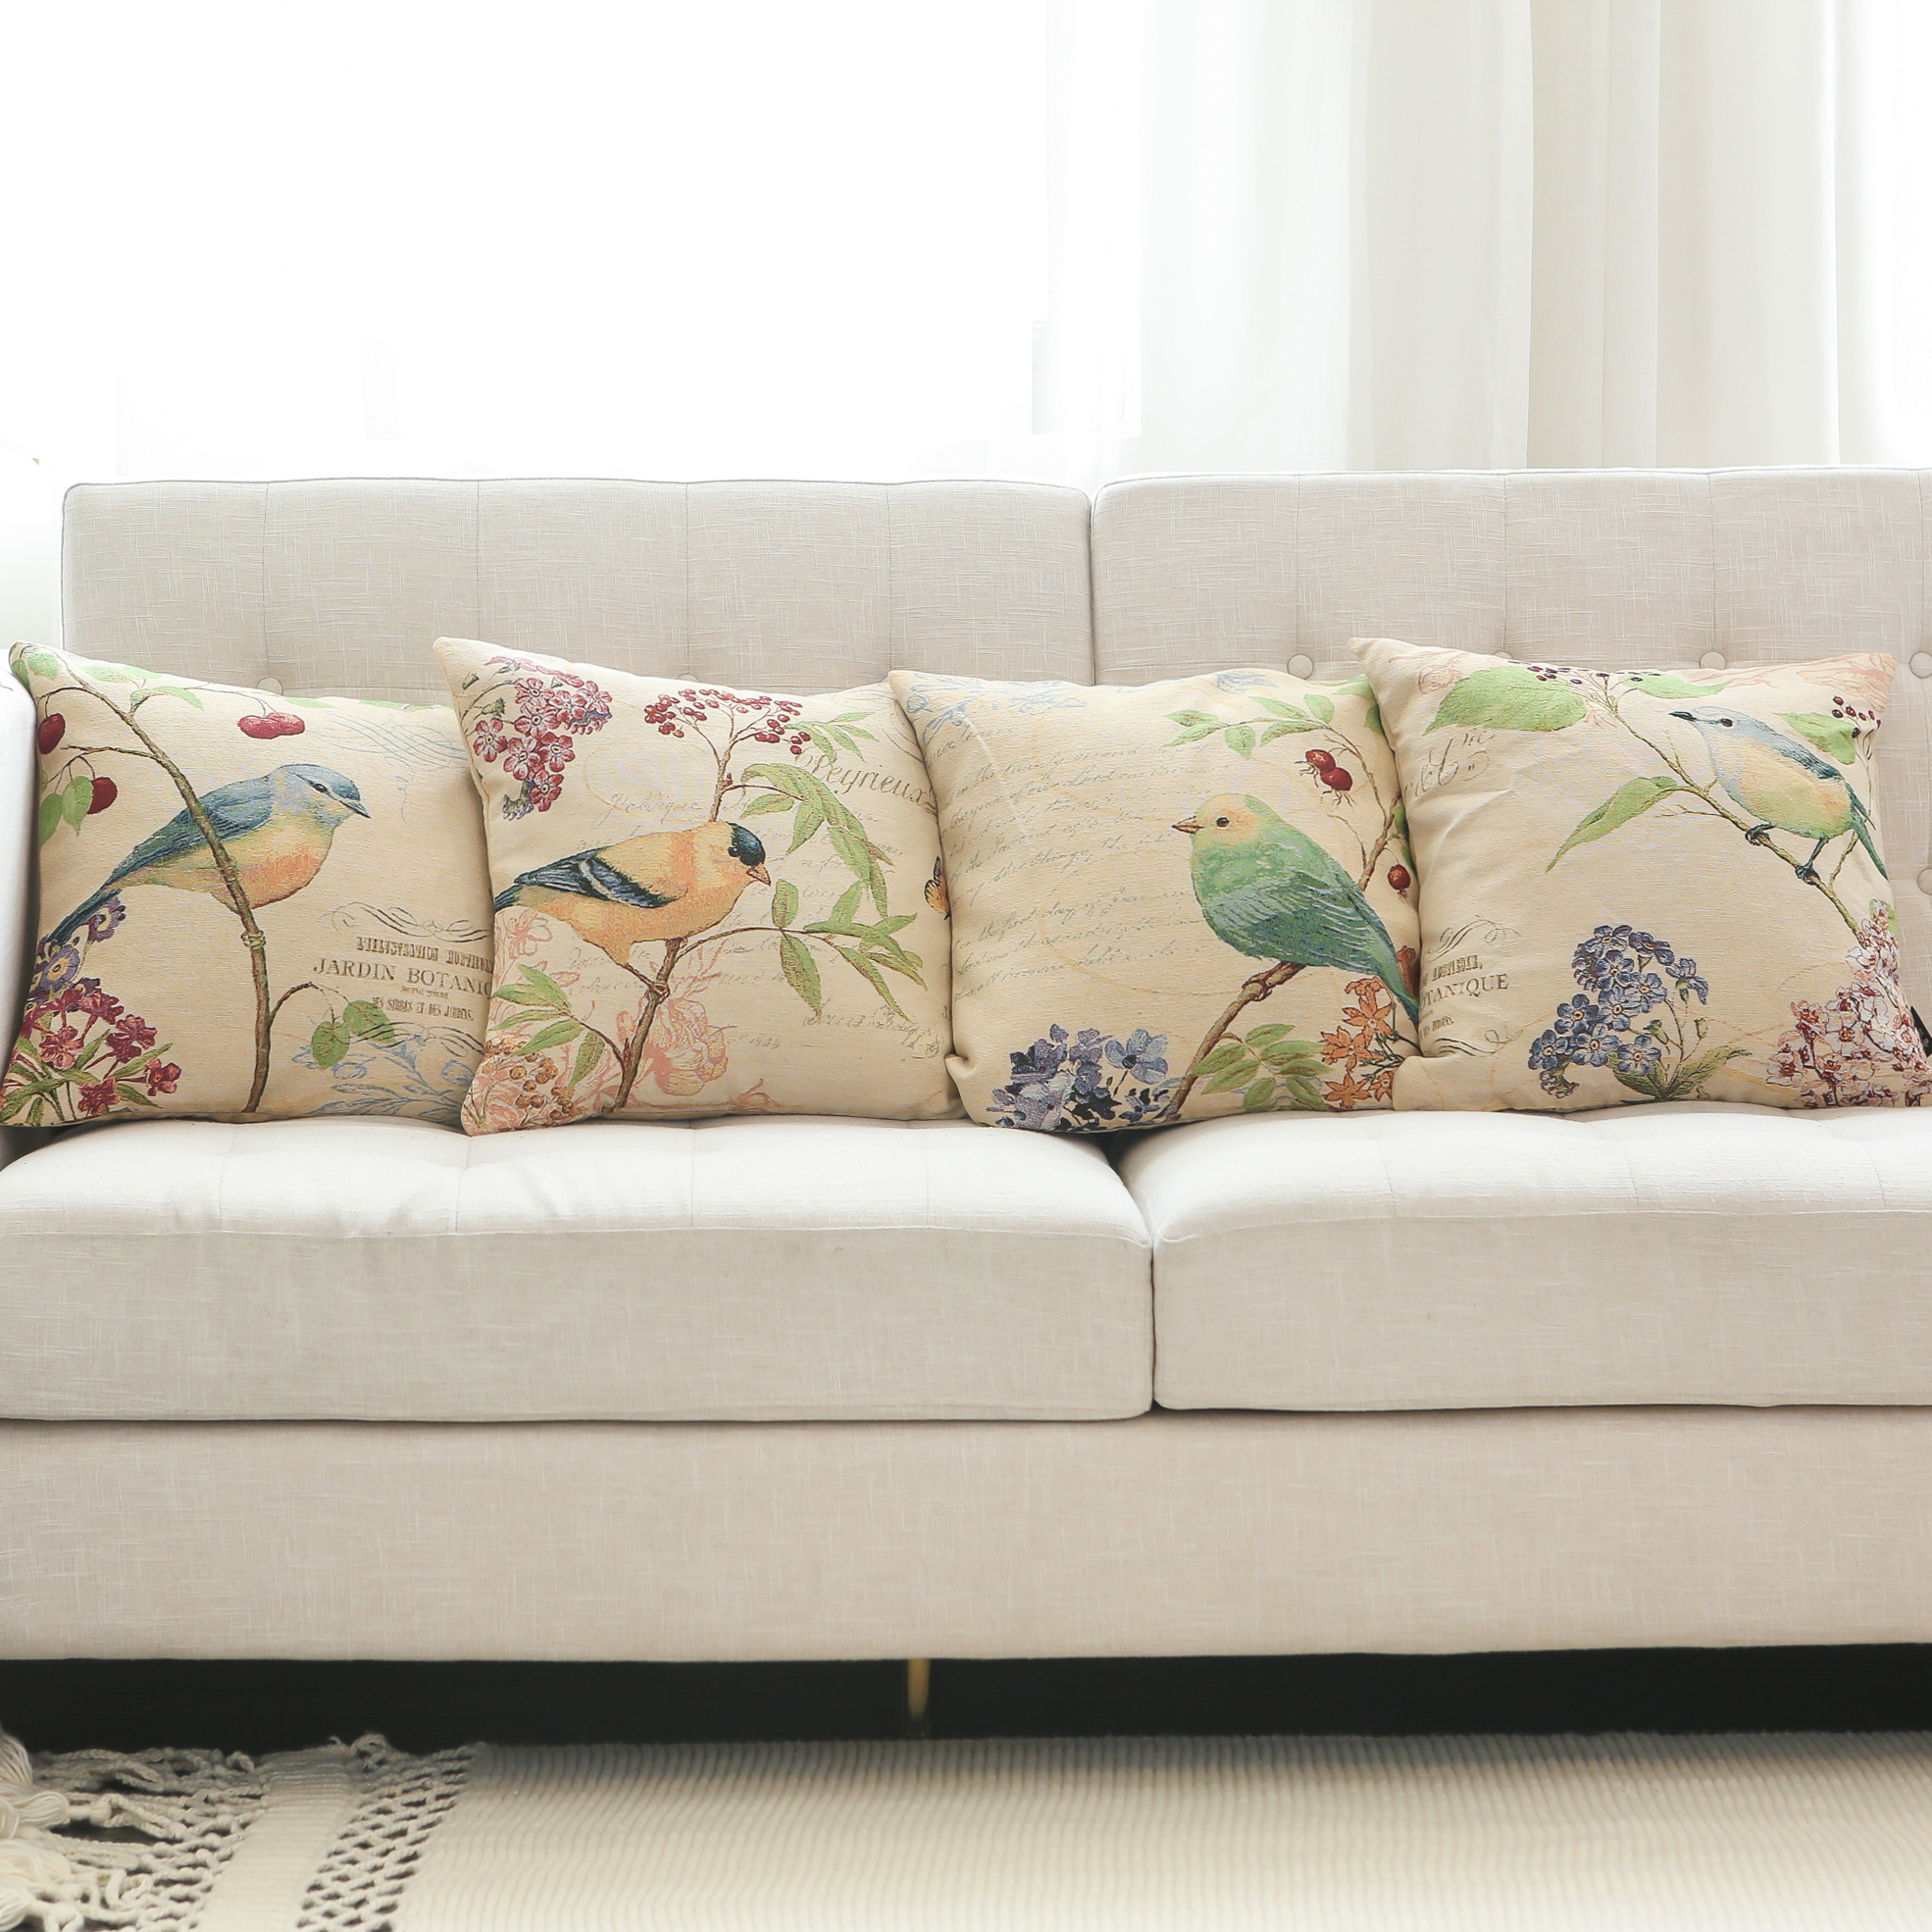 Amazon Hot Selling Bird and Flower Series Jacquard Throw Pillow Covers Cushion Covers for Sofa Couch Bed Decor